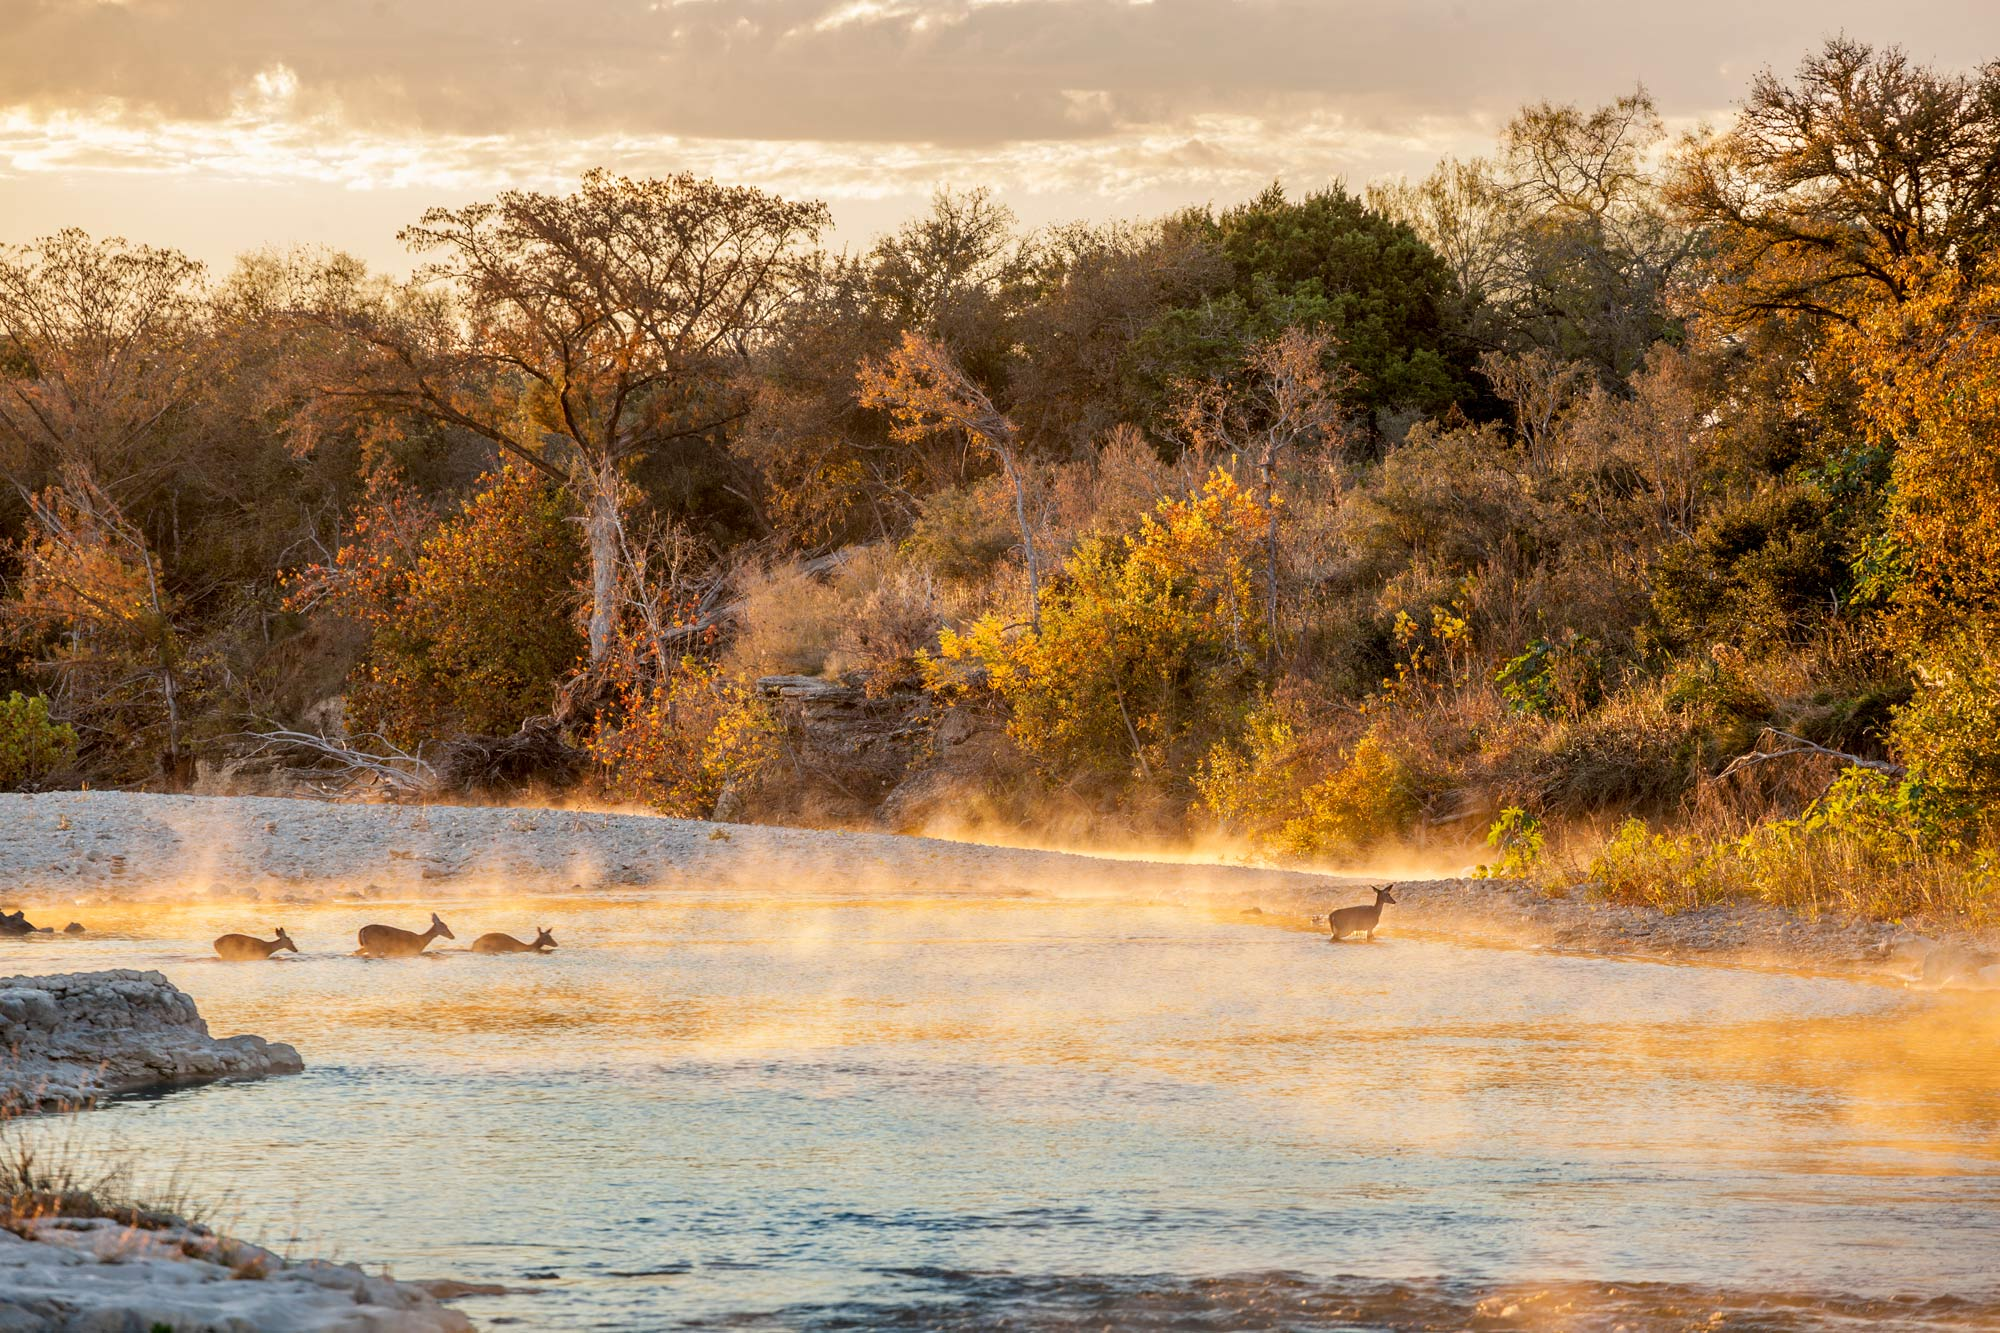 Deer crossing the Blanco River in Texas at sunrise